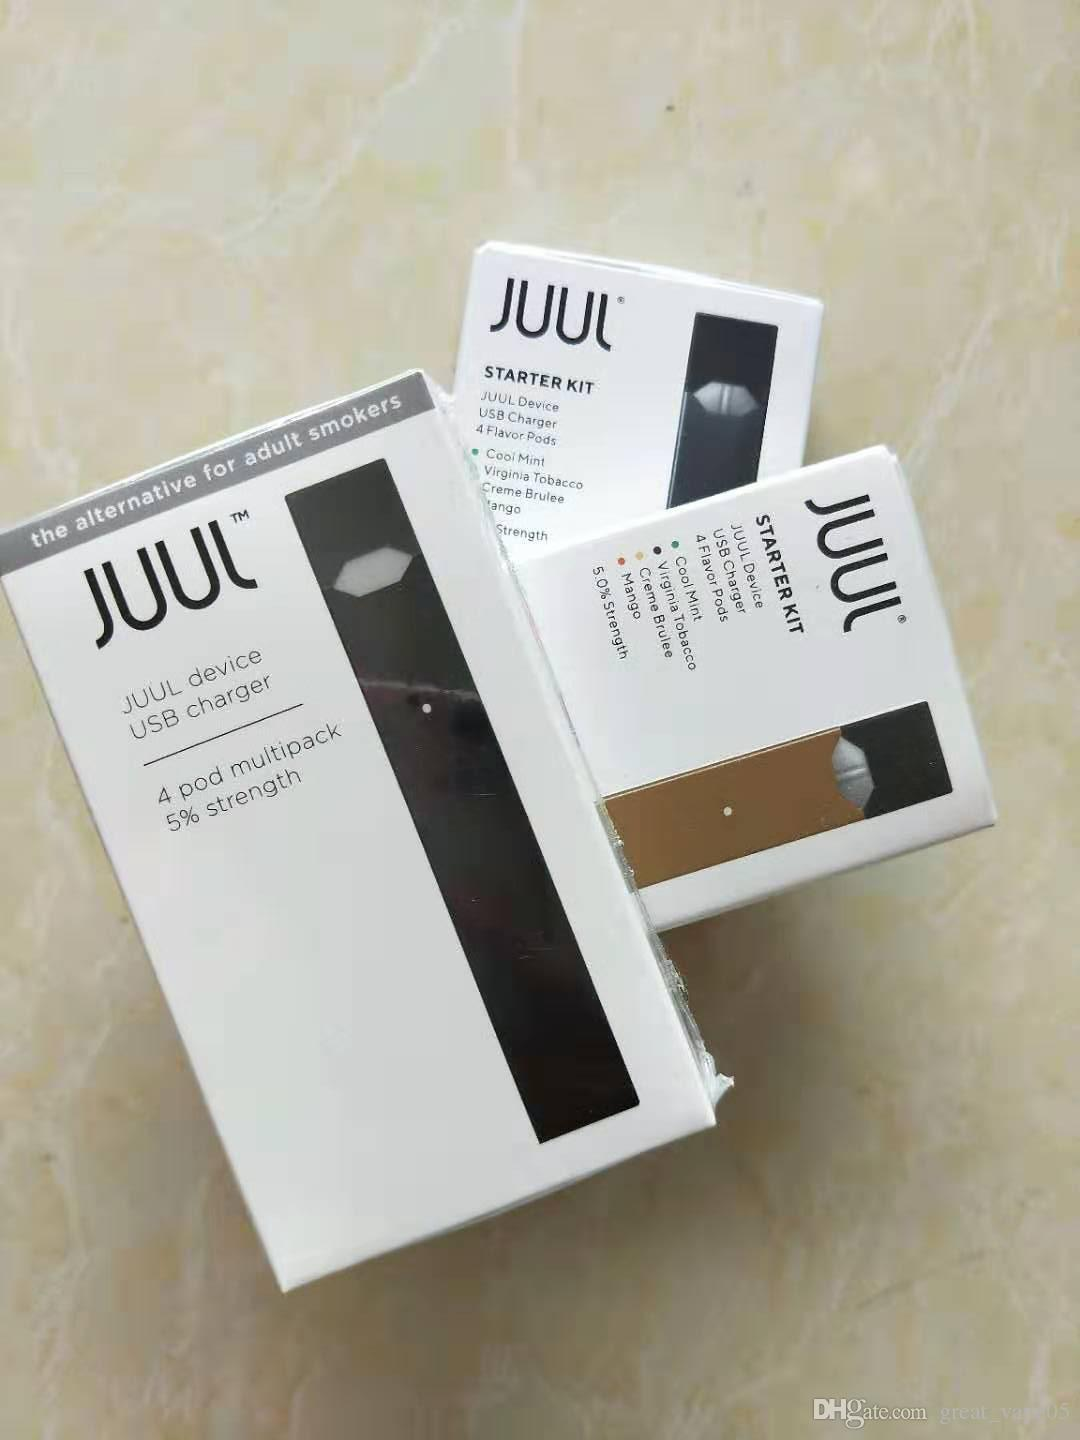 2020 CHEAPEST Juul Starter Kit With 4 Pods USB Rechargeable Juul With 4  Pods Vaporizer Juul Vapor Free DHL Shipping